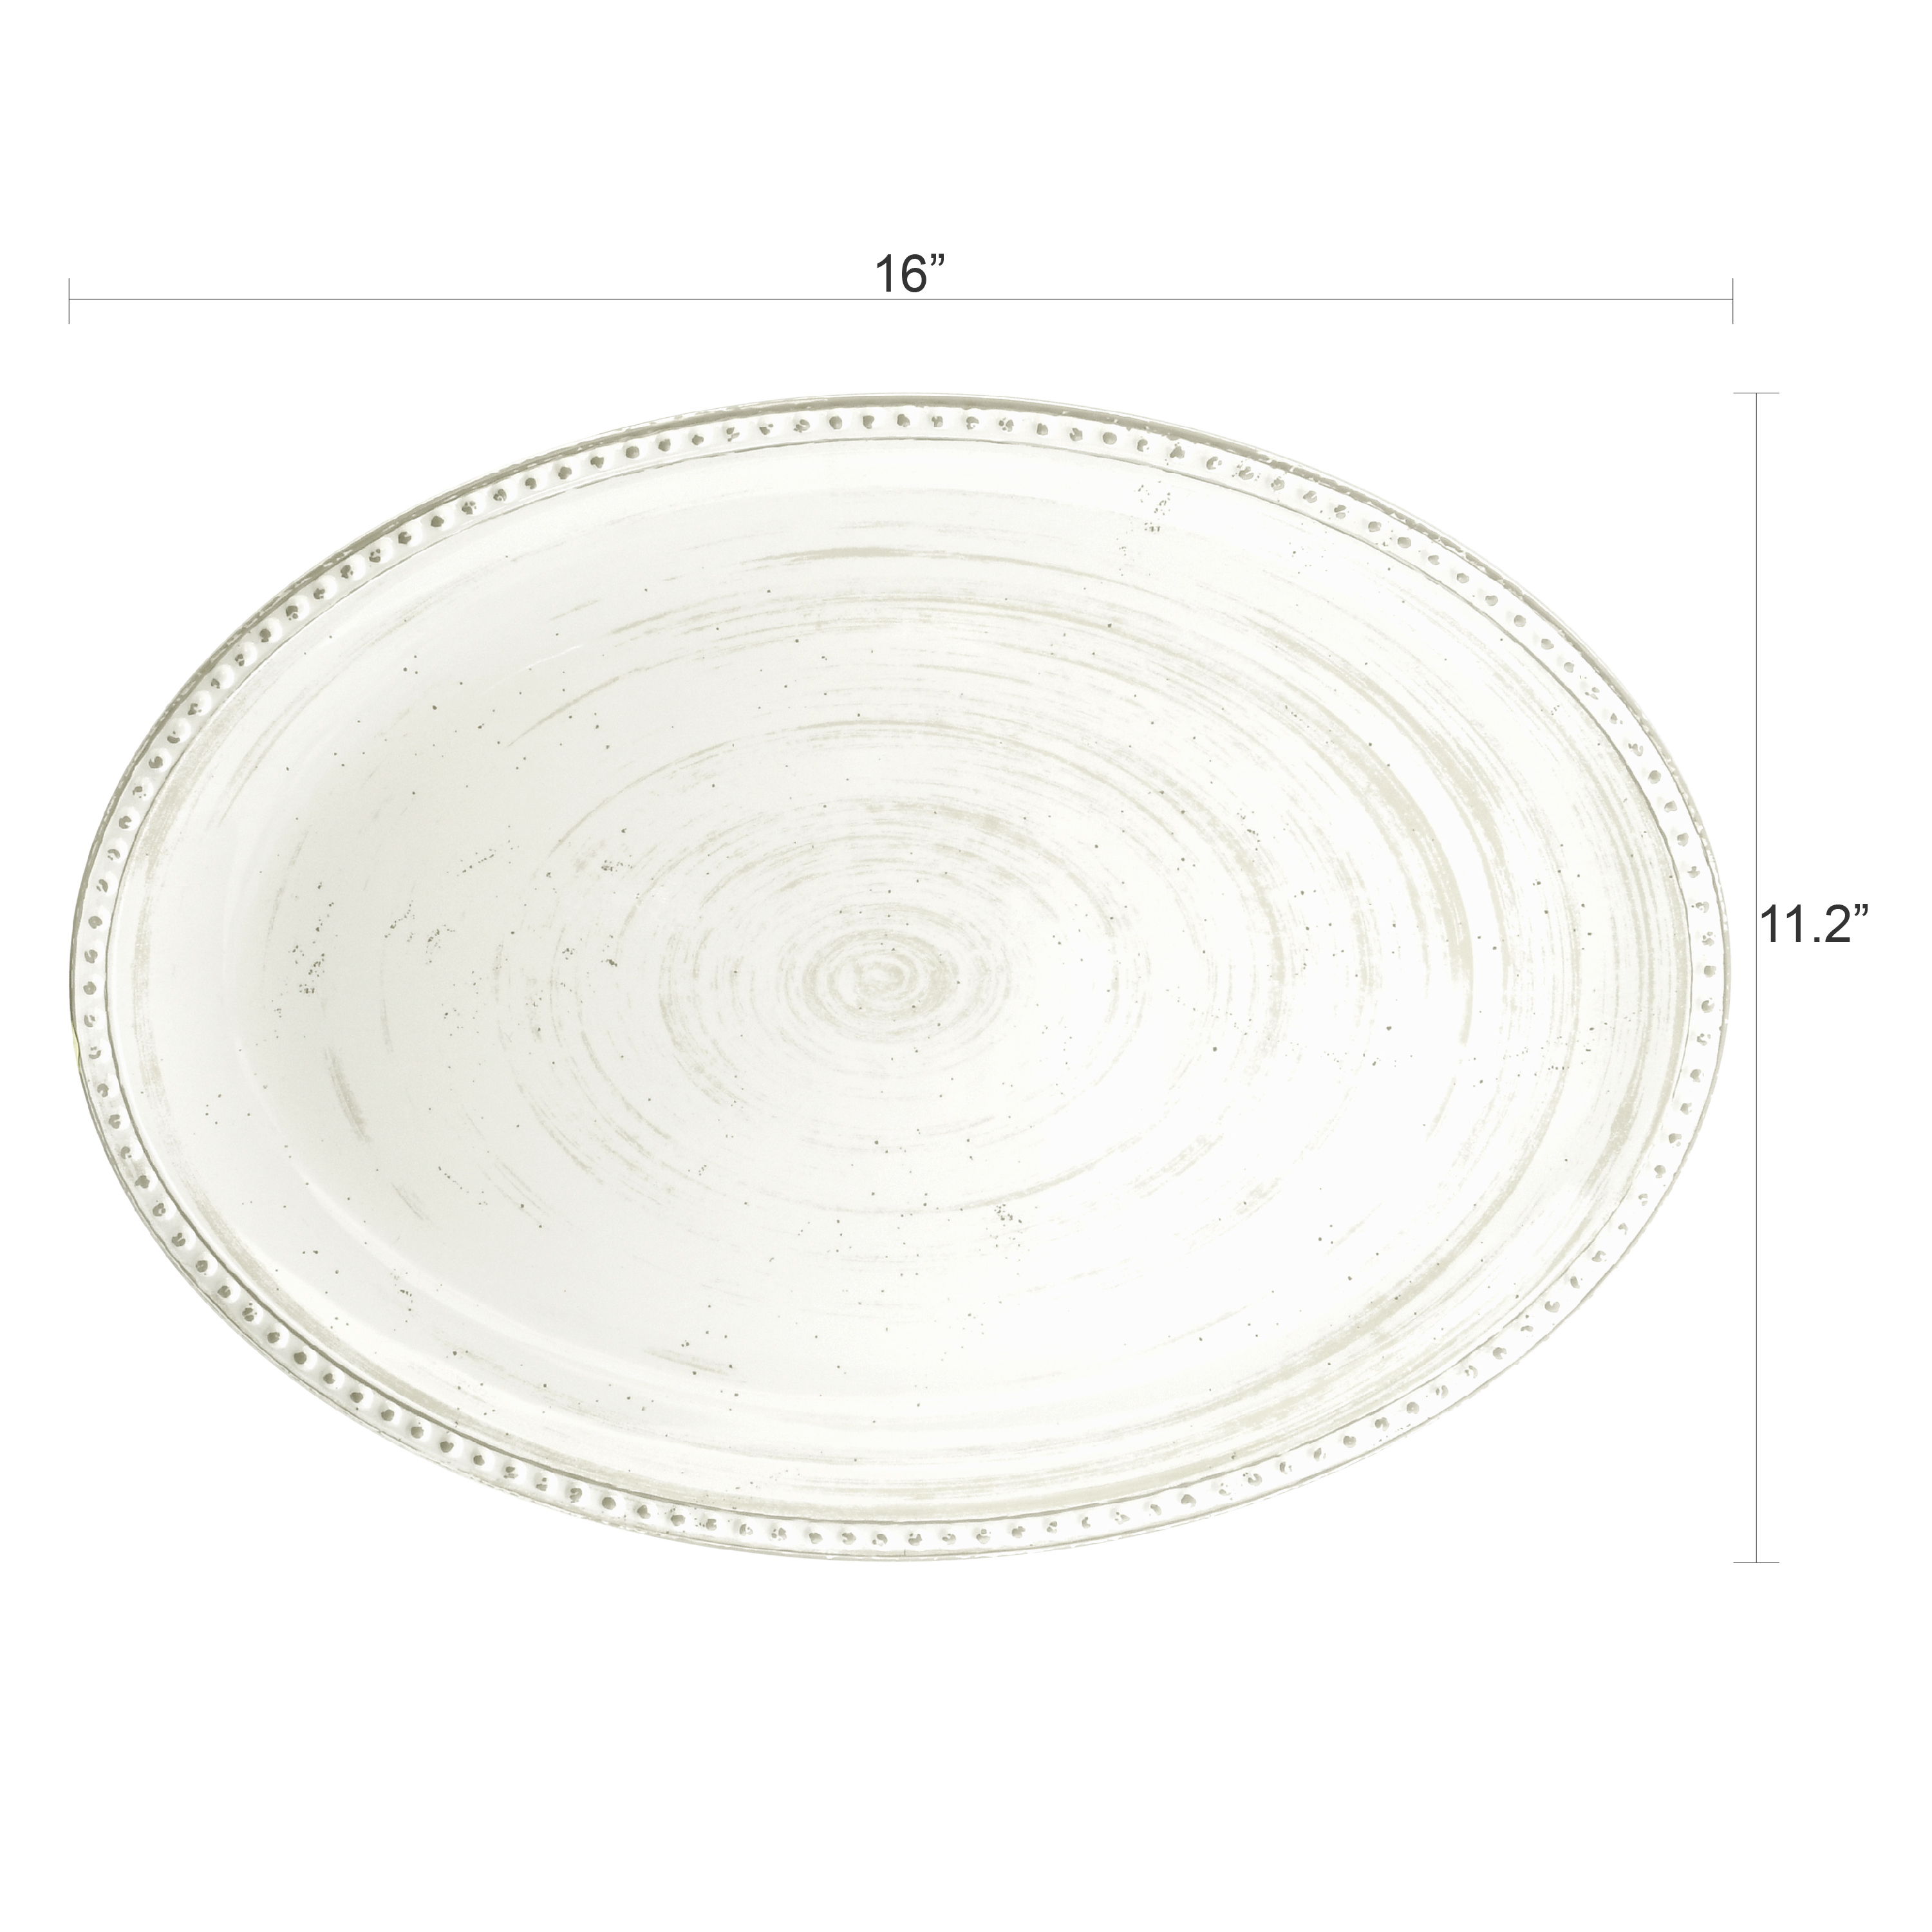 French Country Serving Tray, Oyster slideshow image 3